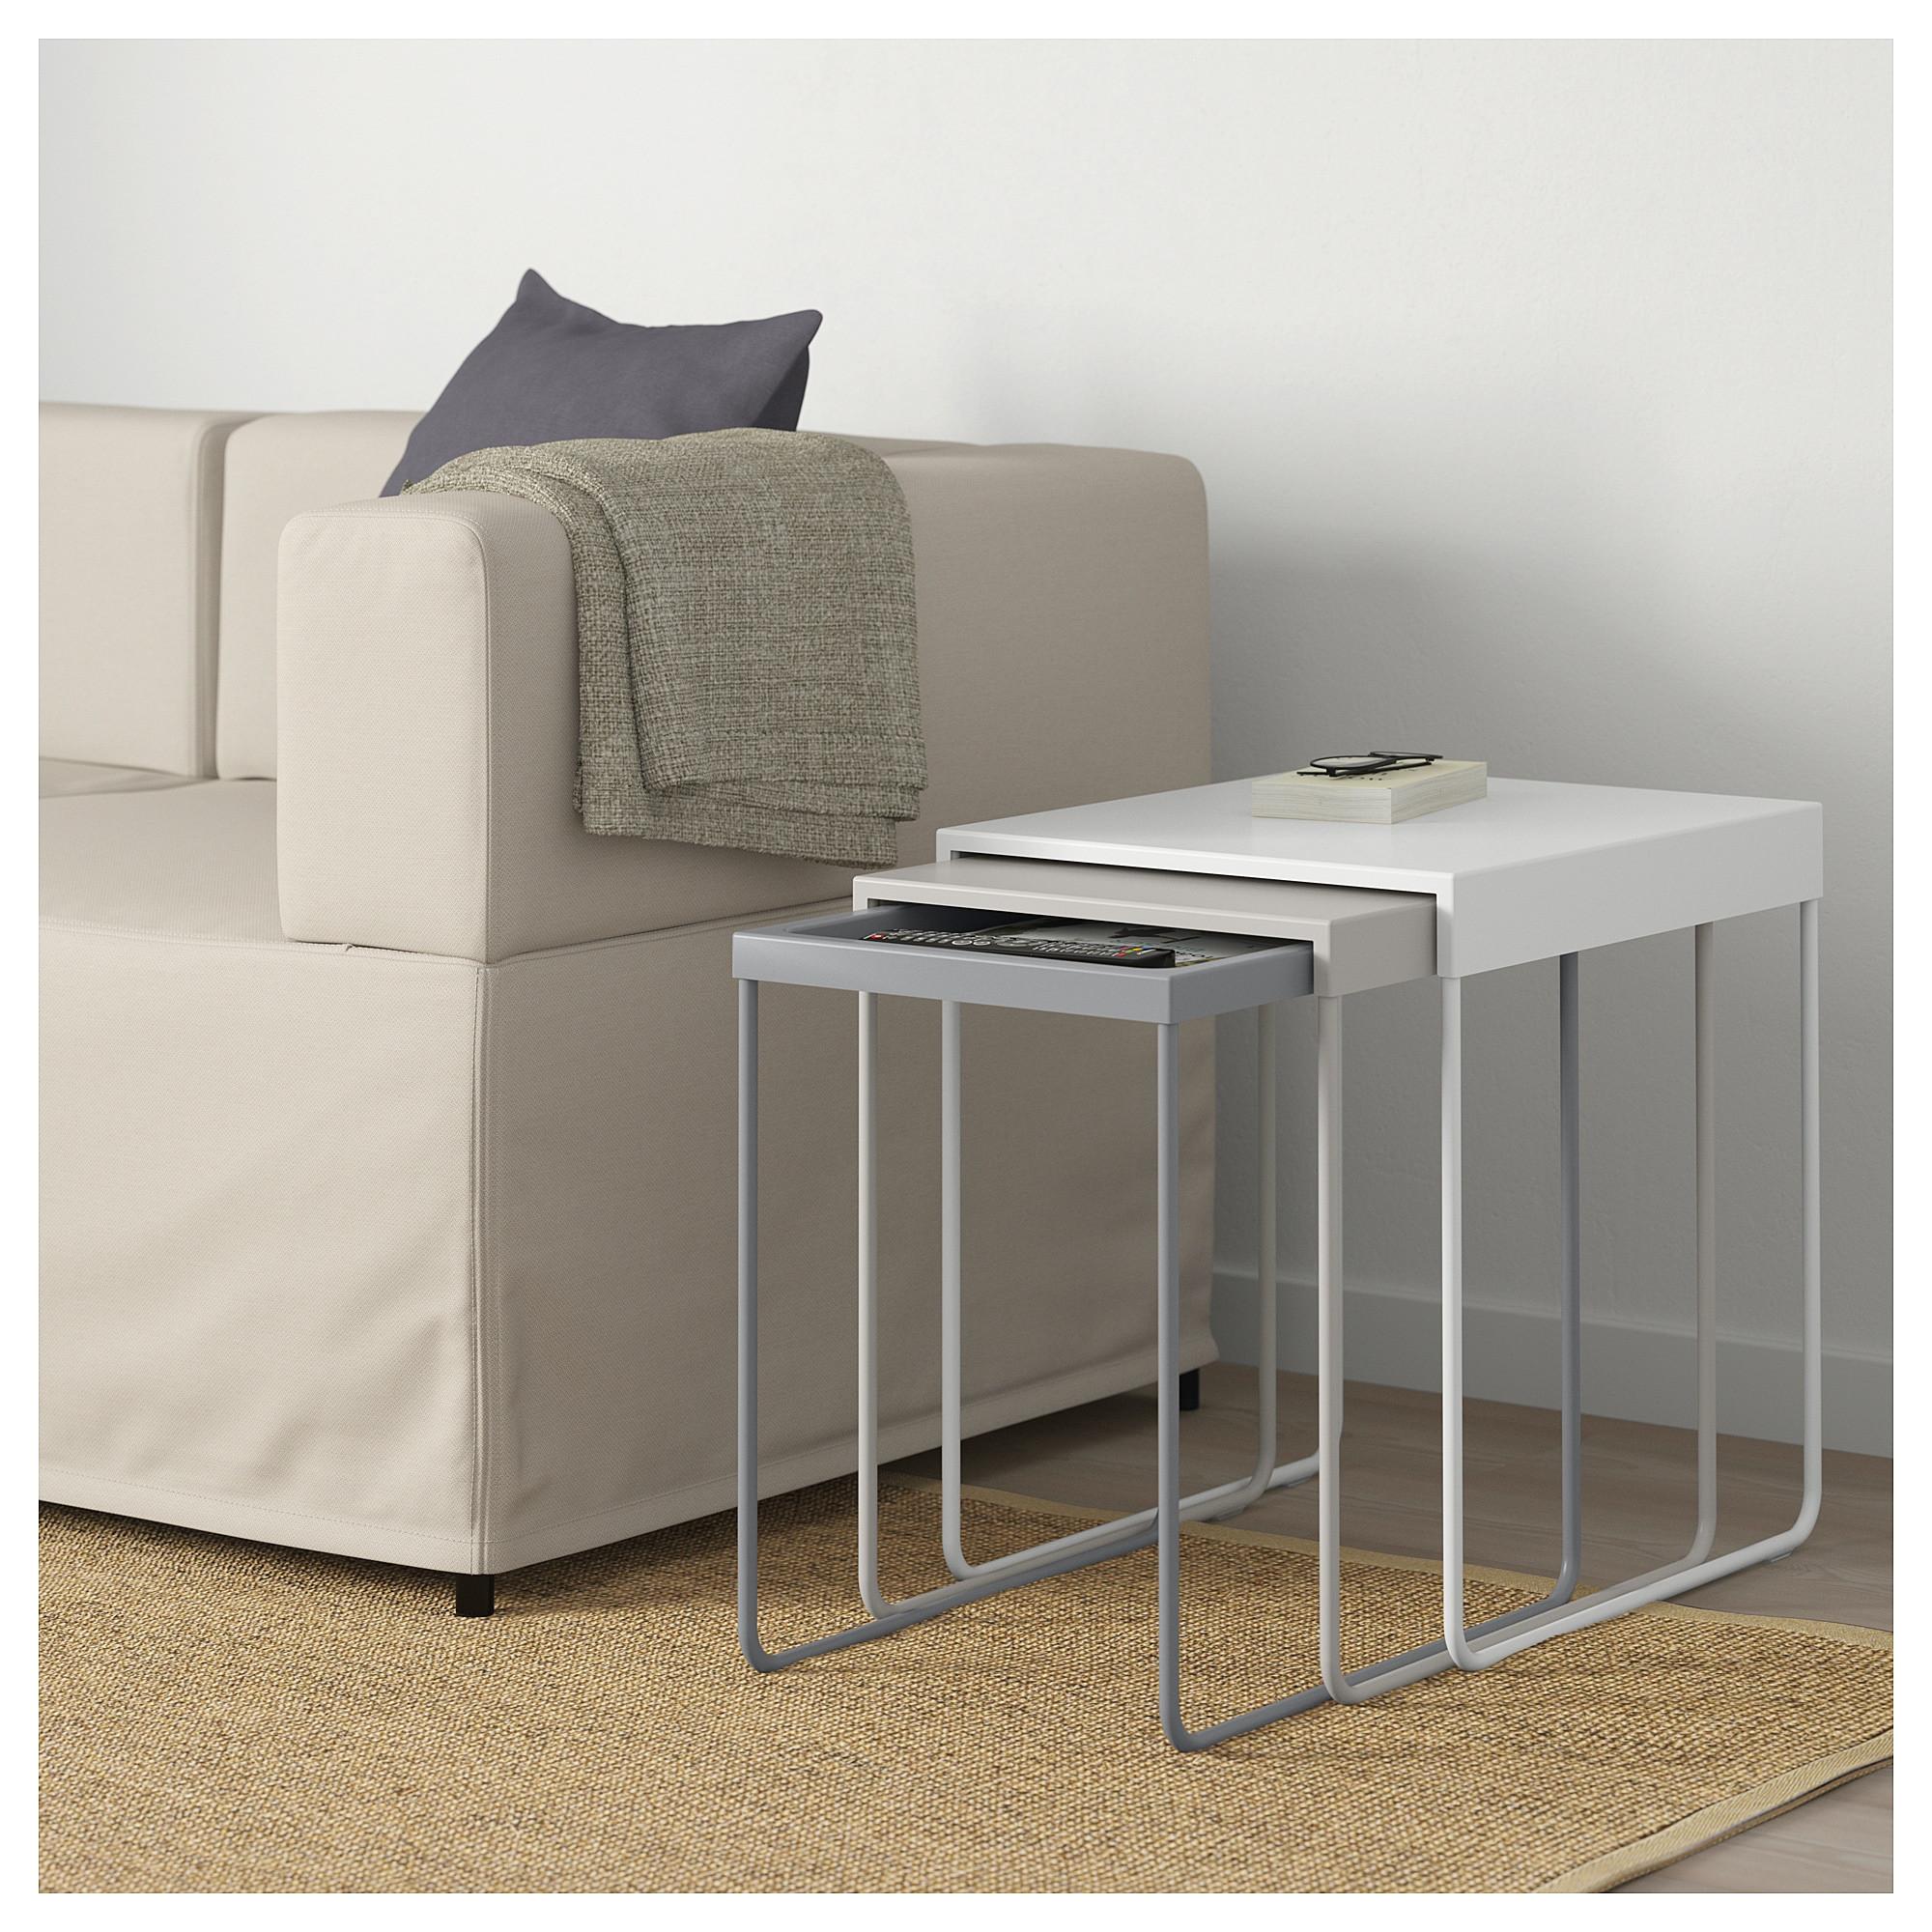 appealing ikea tampa home furnishings tampa fl within granboda nesting tables set of 3 ikea